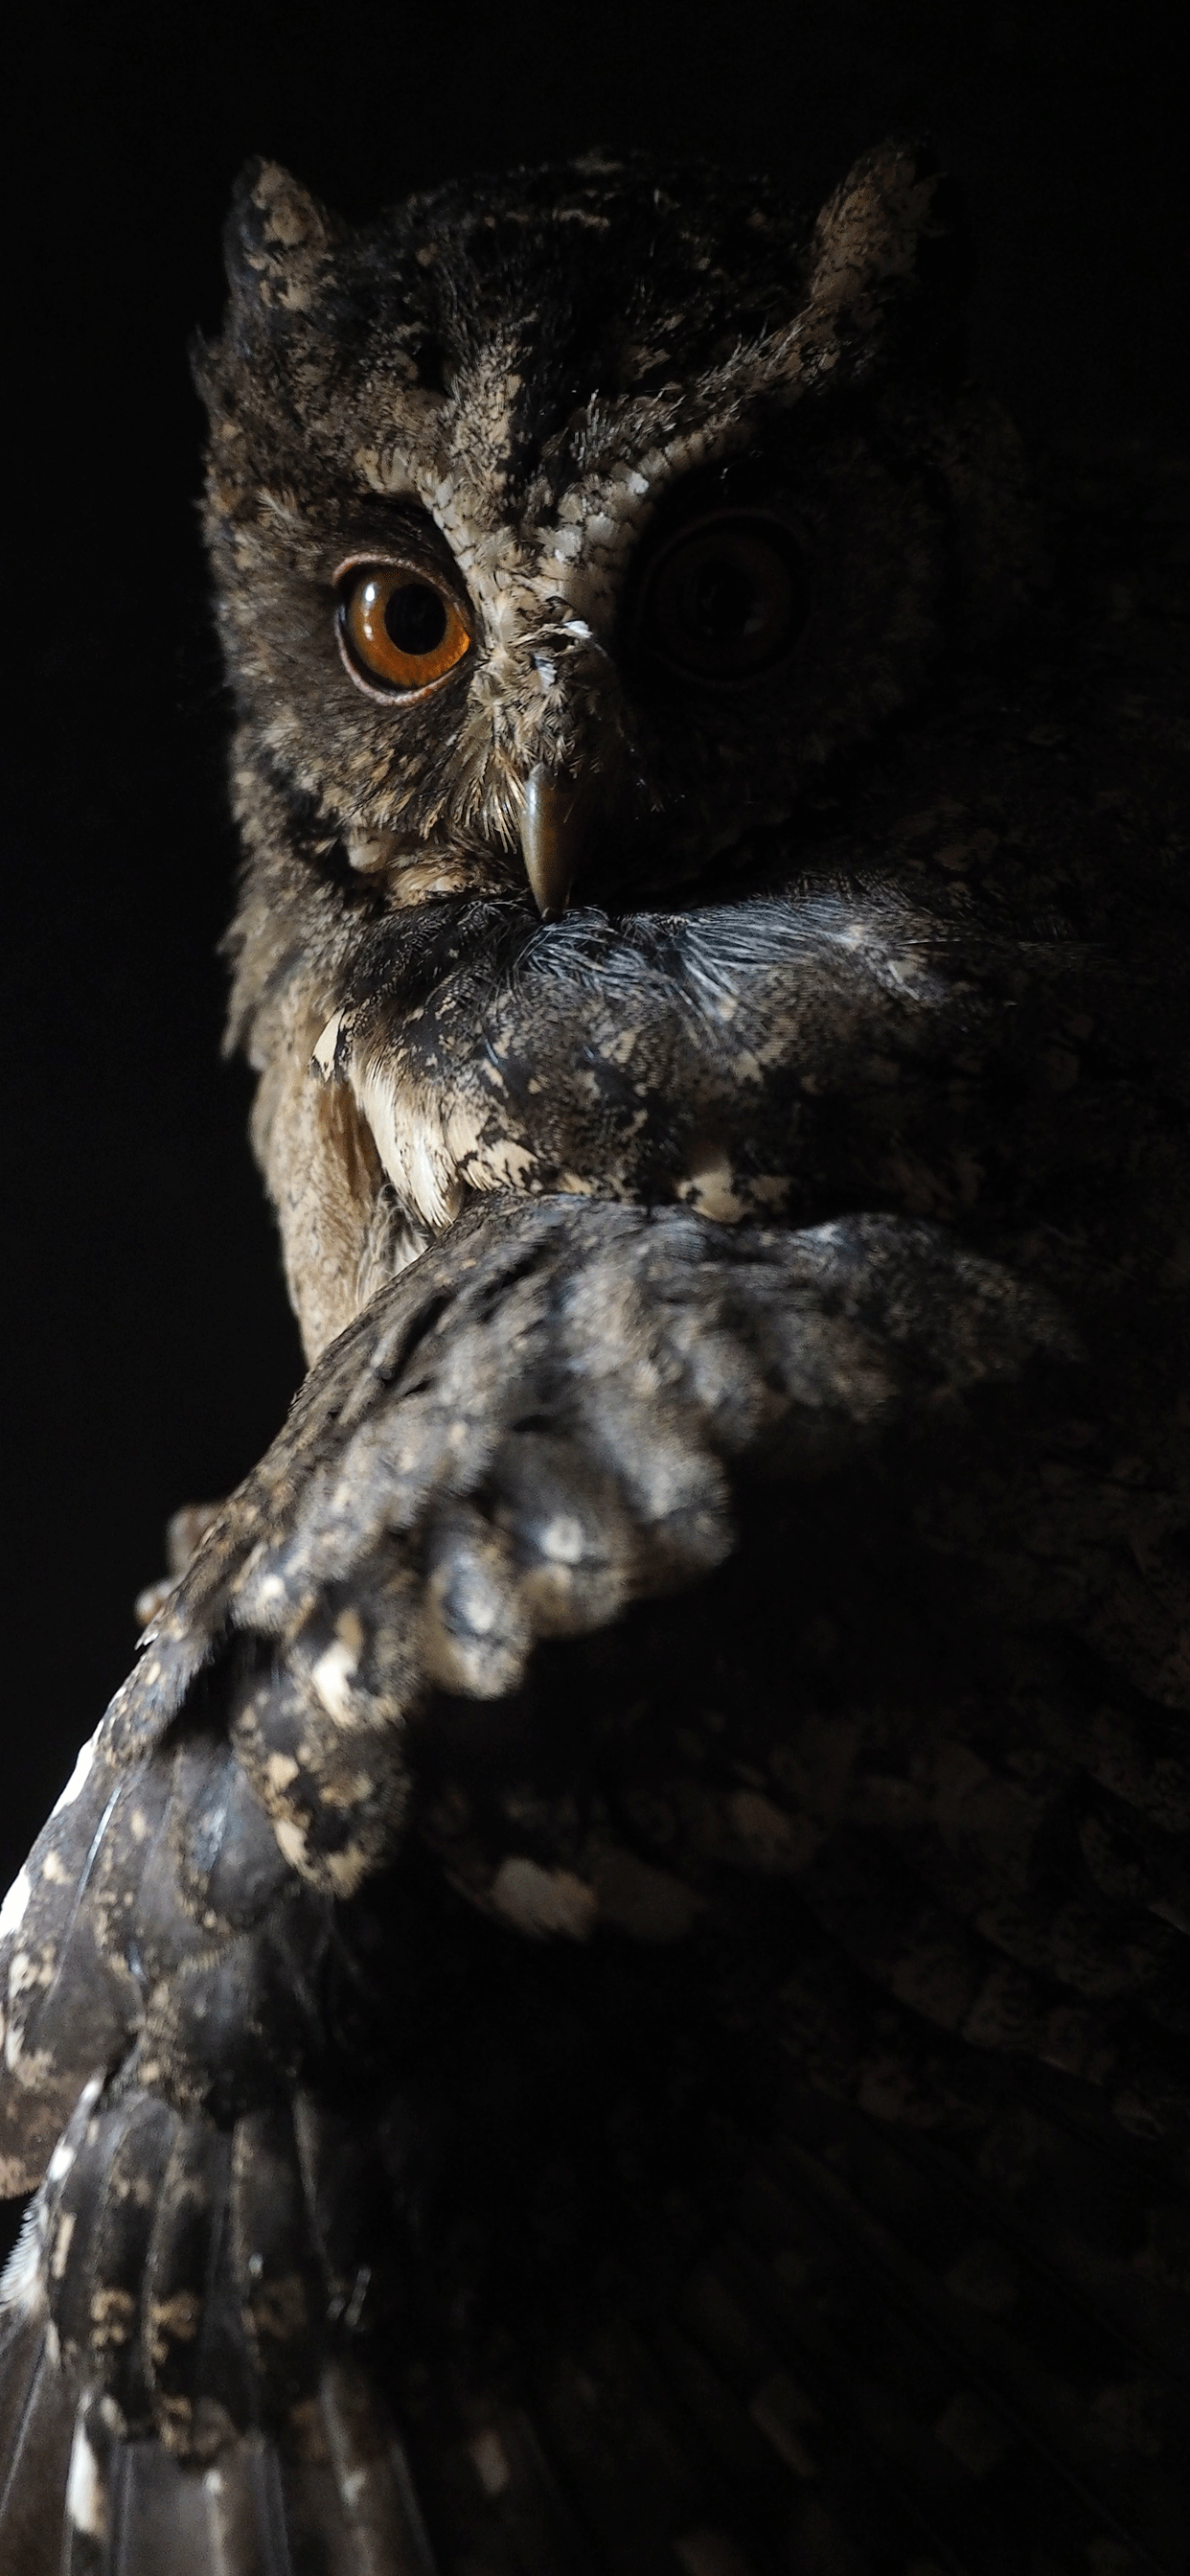 iPhone wallpapers owl dark Fonds d'écran iPhone du 07/06/2019